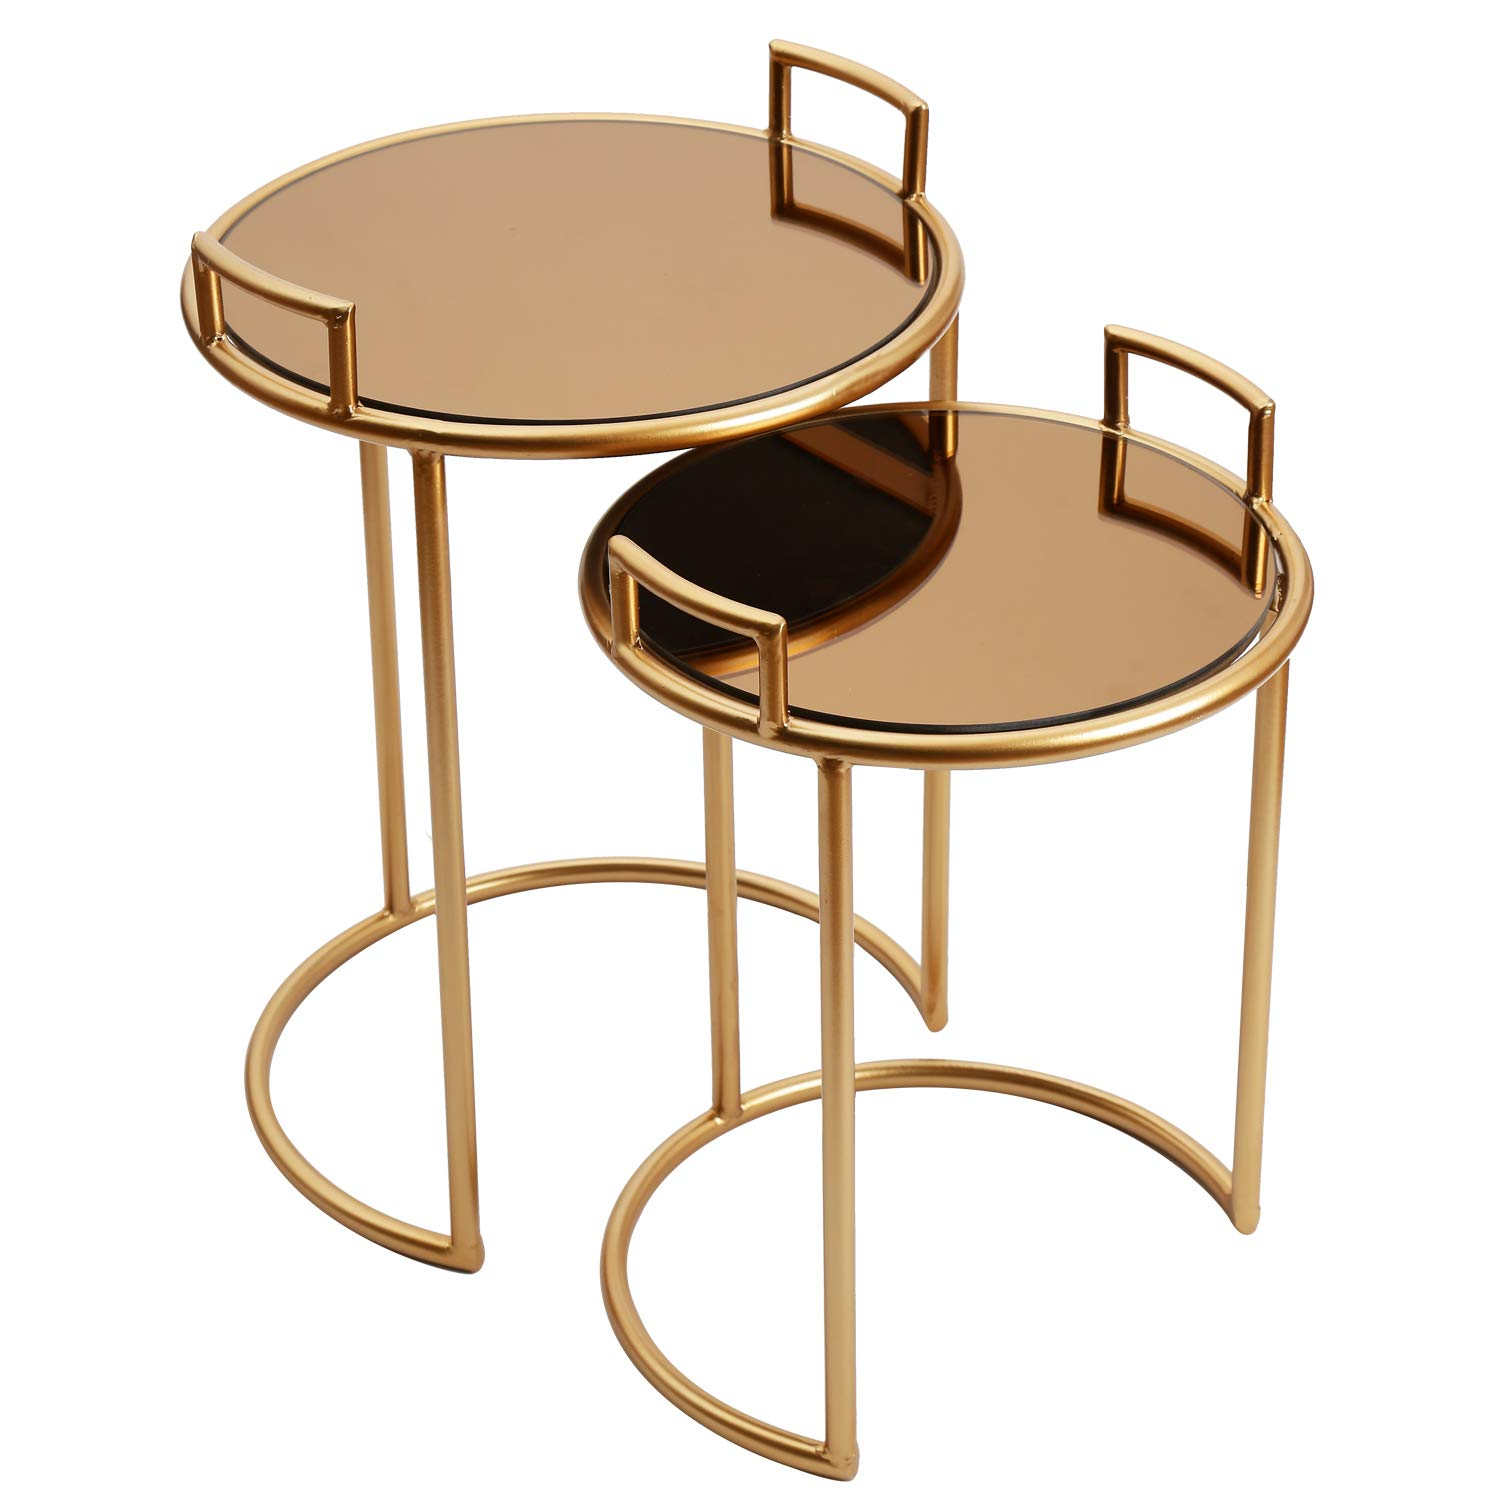 Adeco Classic Nesting Side Table Set Gold 2 Pcs Furniture Home